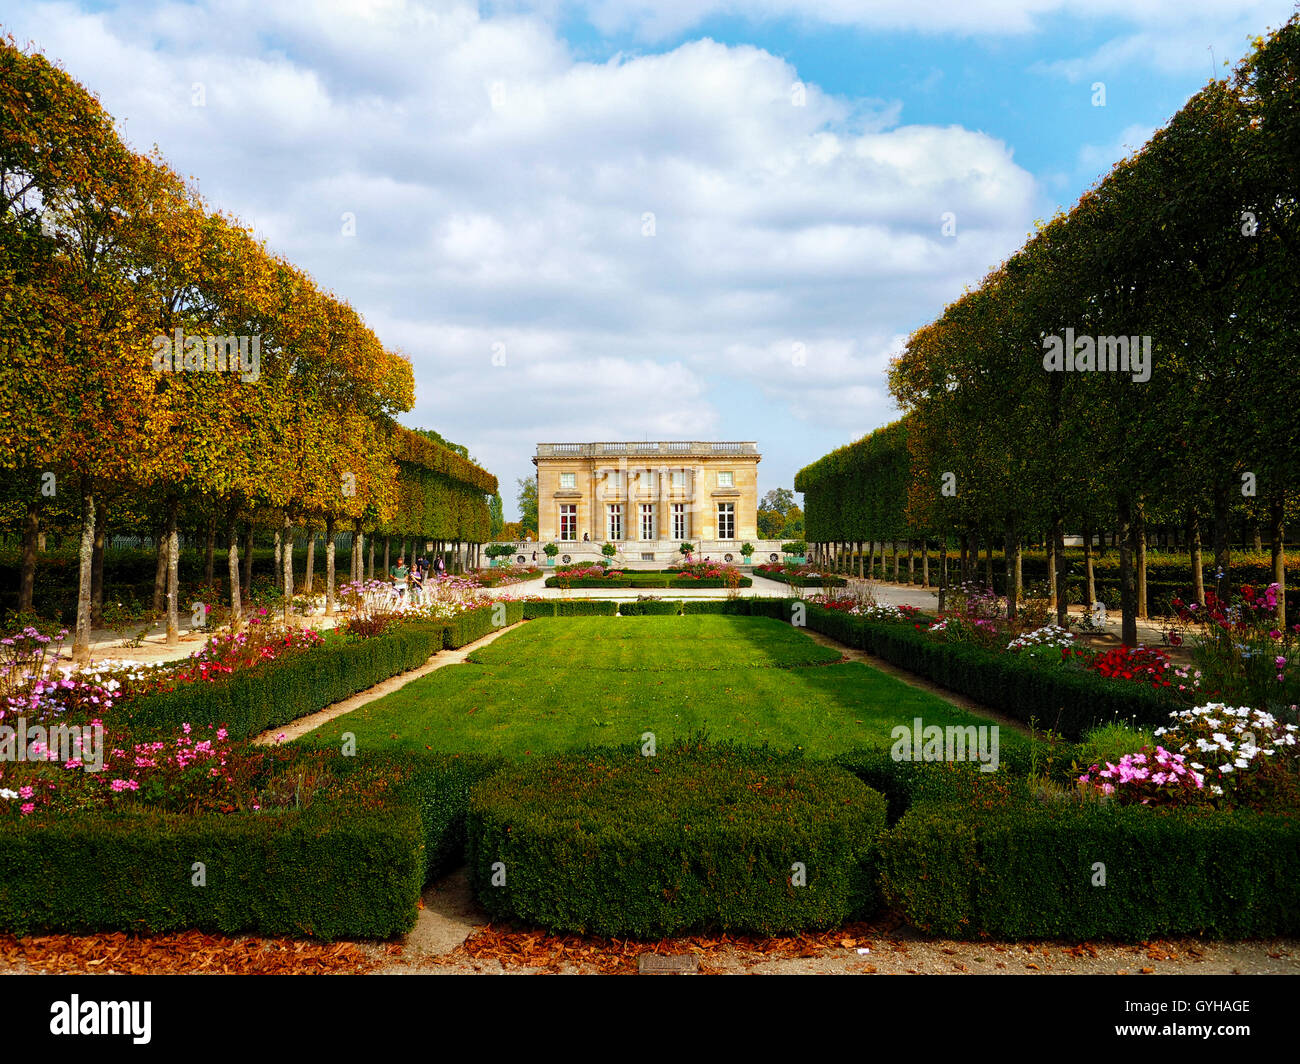 Northern Facade of the Petit Trianon on the grounds of the Palace of Versailles, Versailles, France - Stock Image